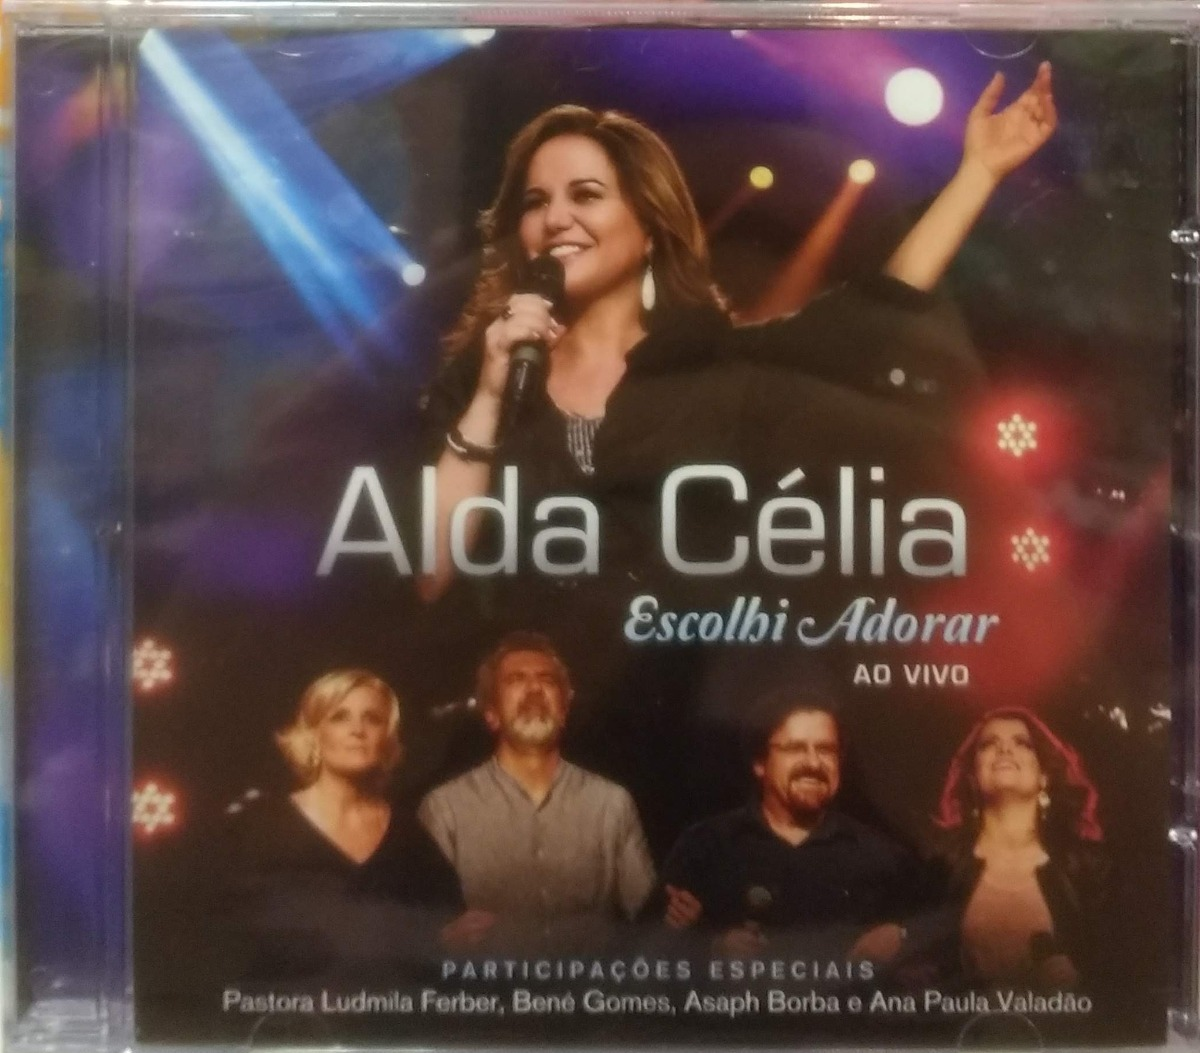 cd alda celia escolhi te adorar